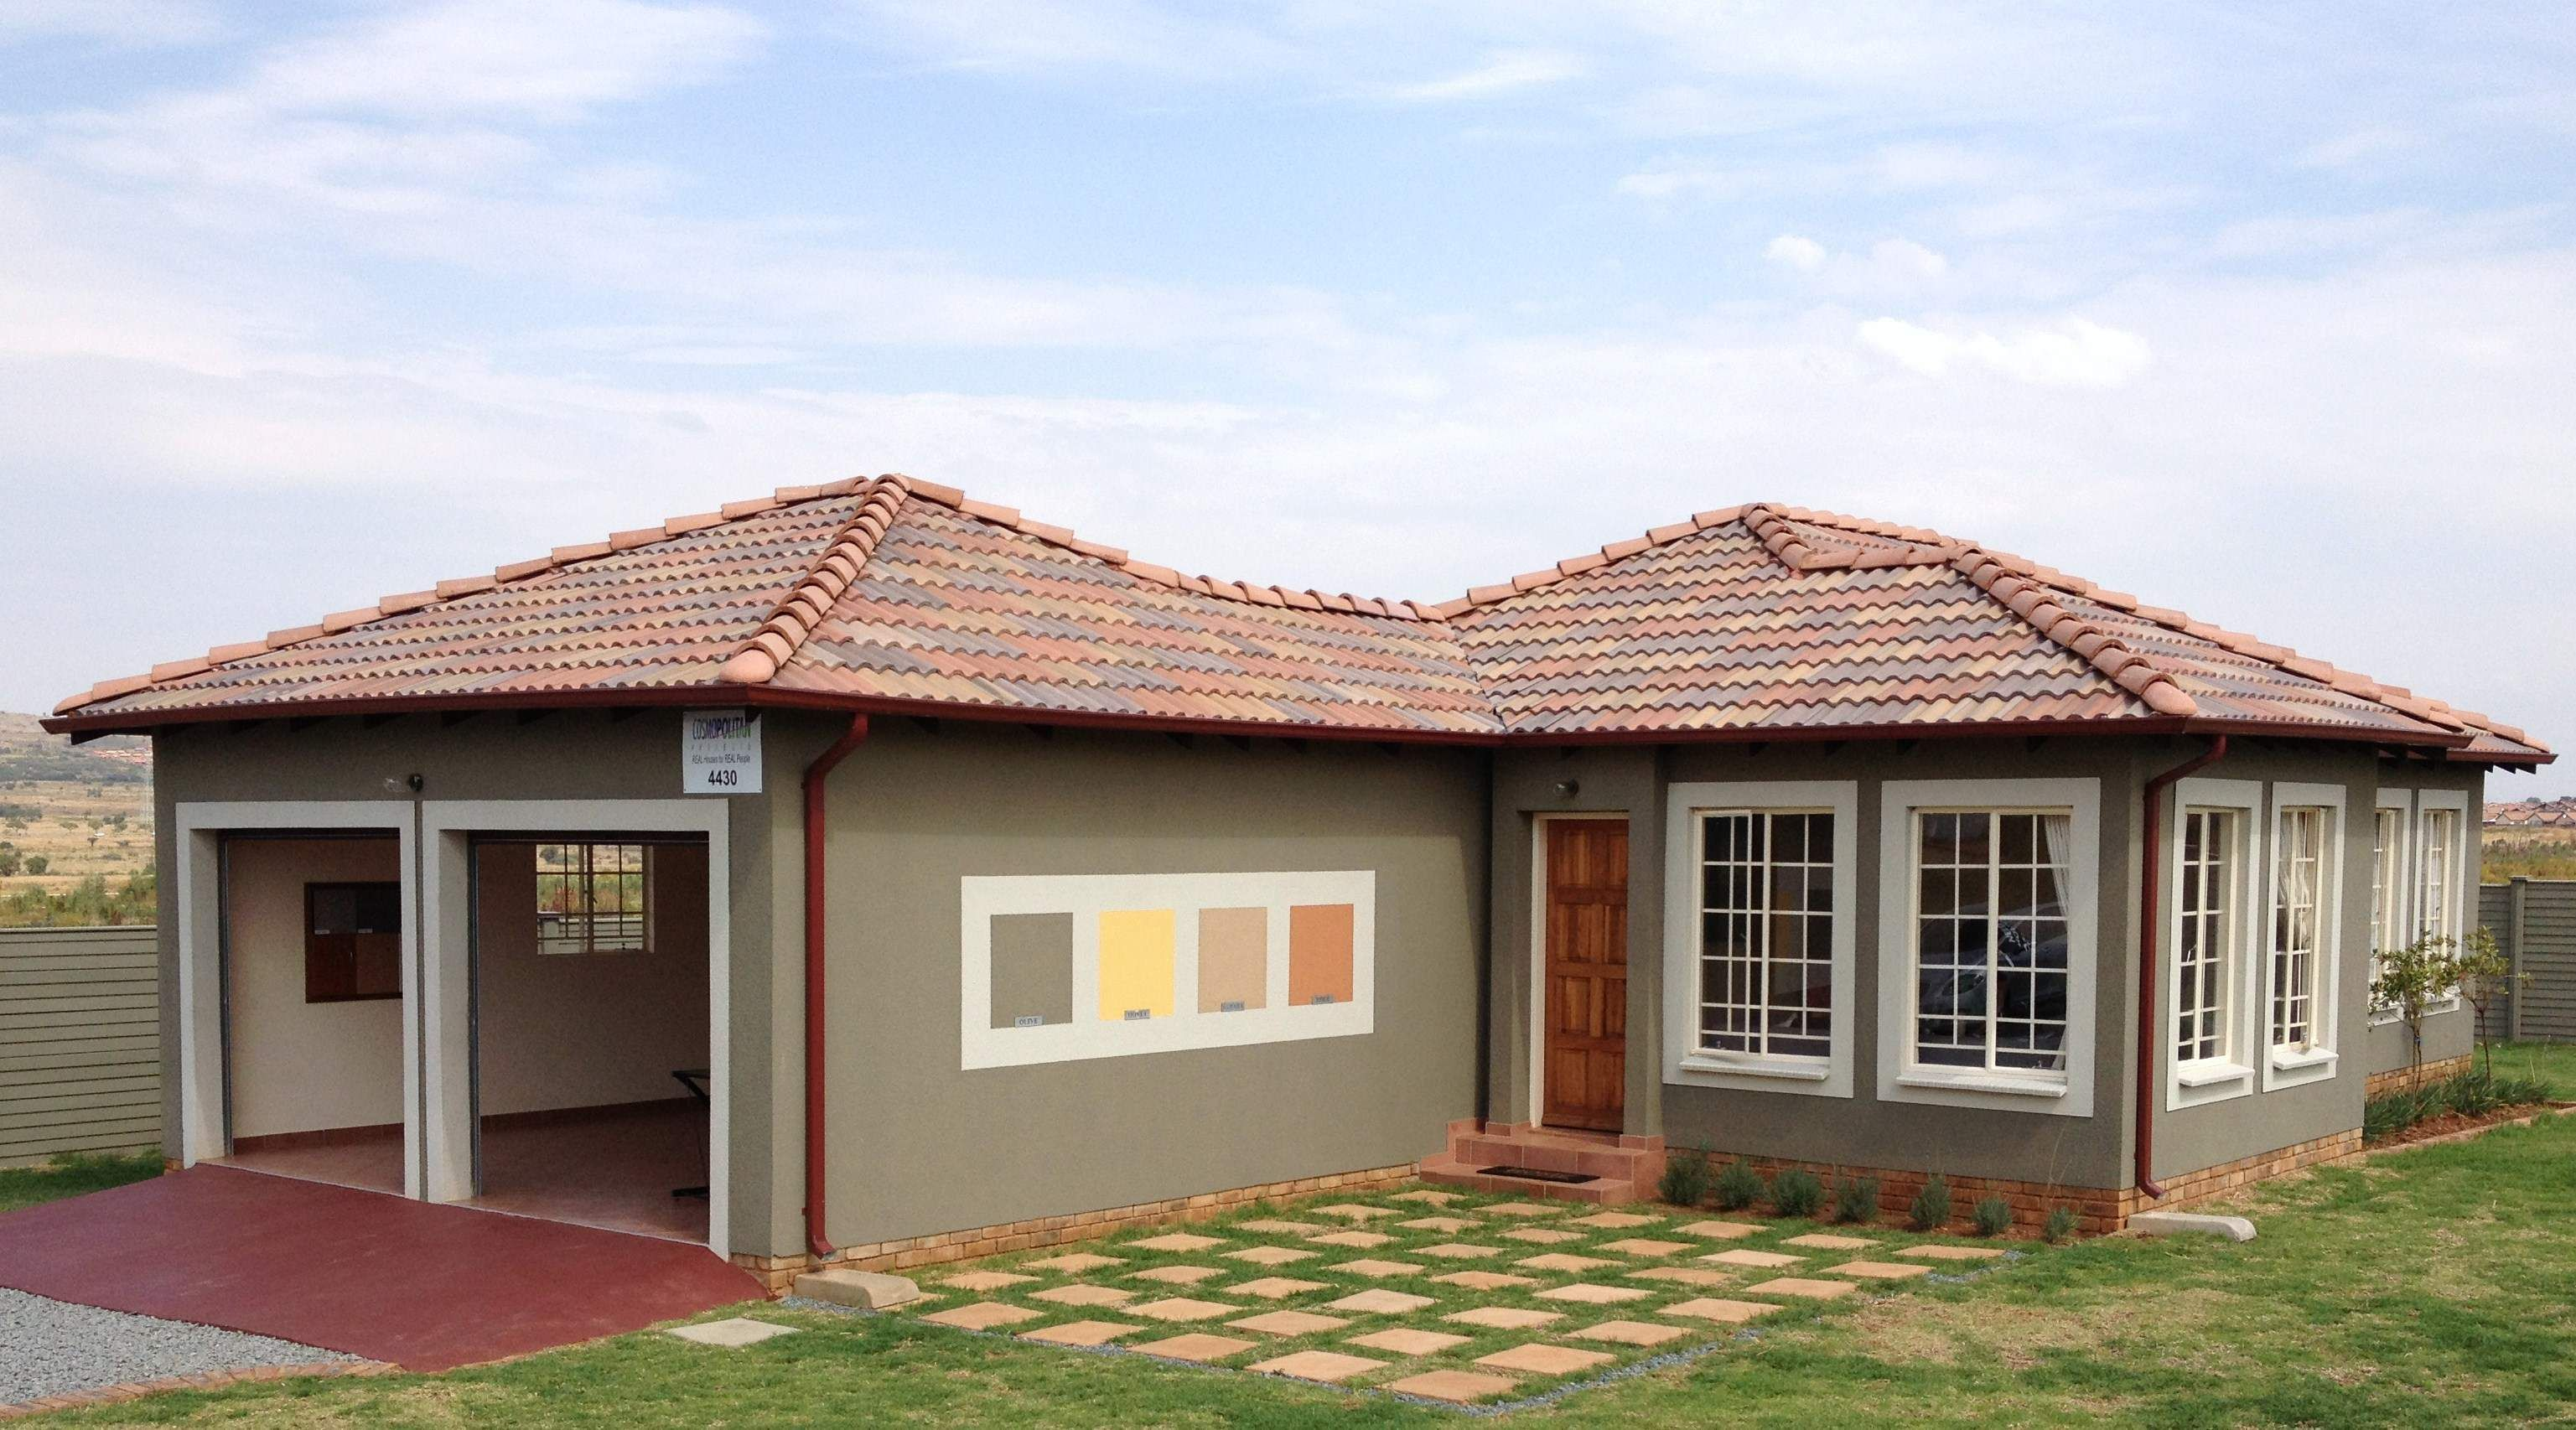 The tuscan house plans designs south africa modern tuscan house is designed that talking about to